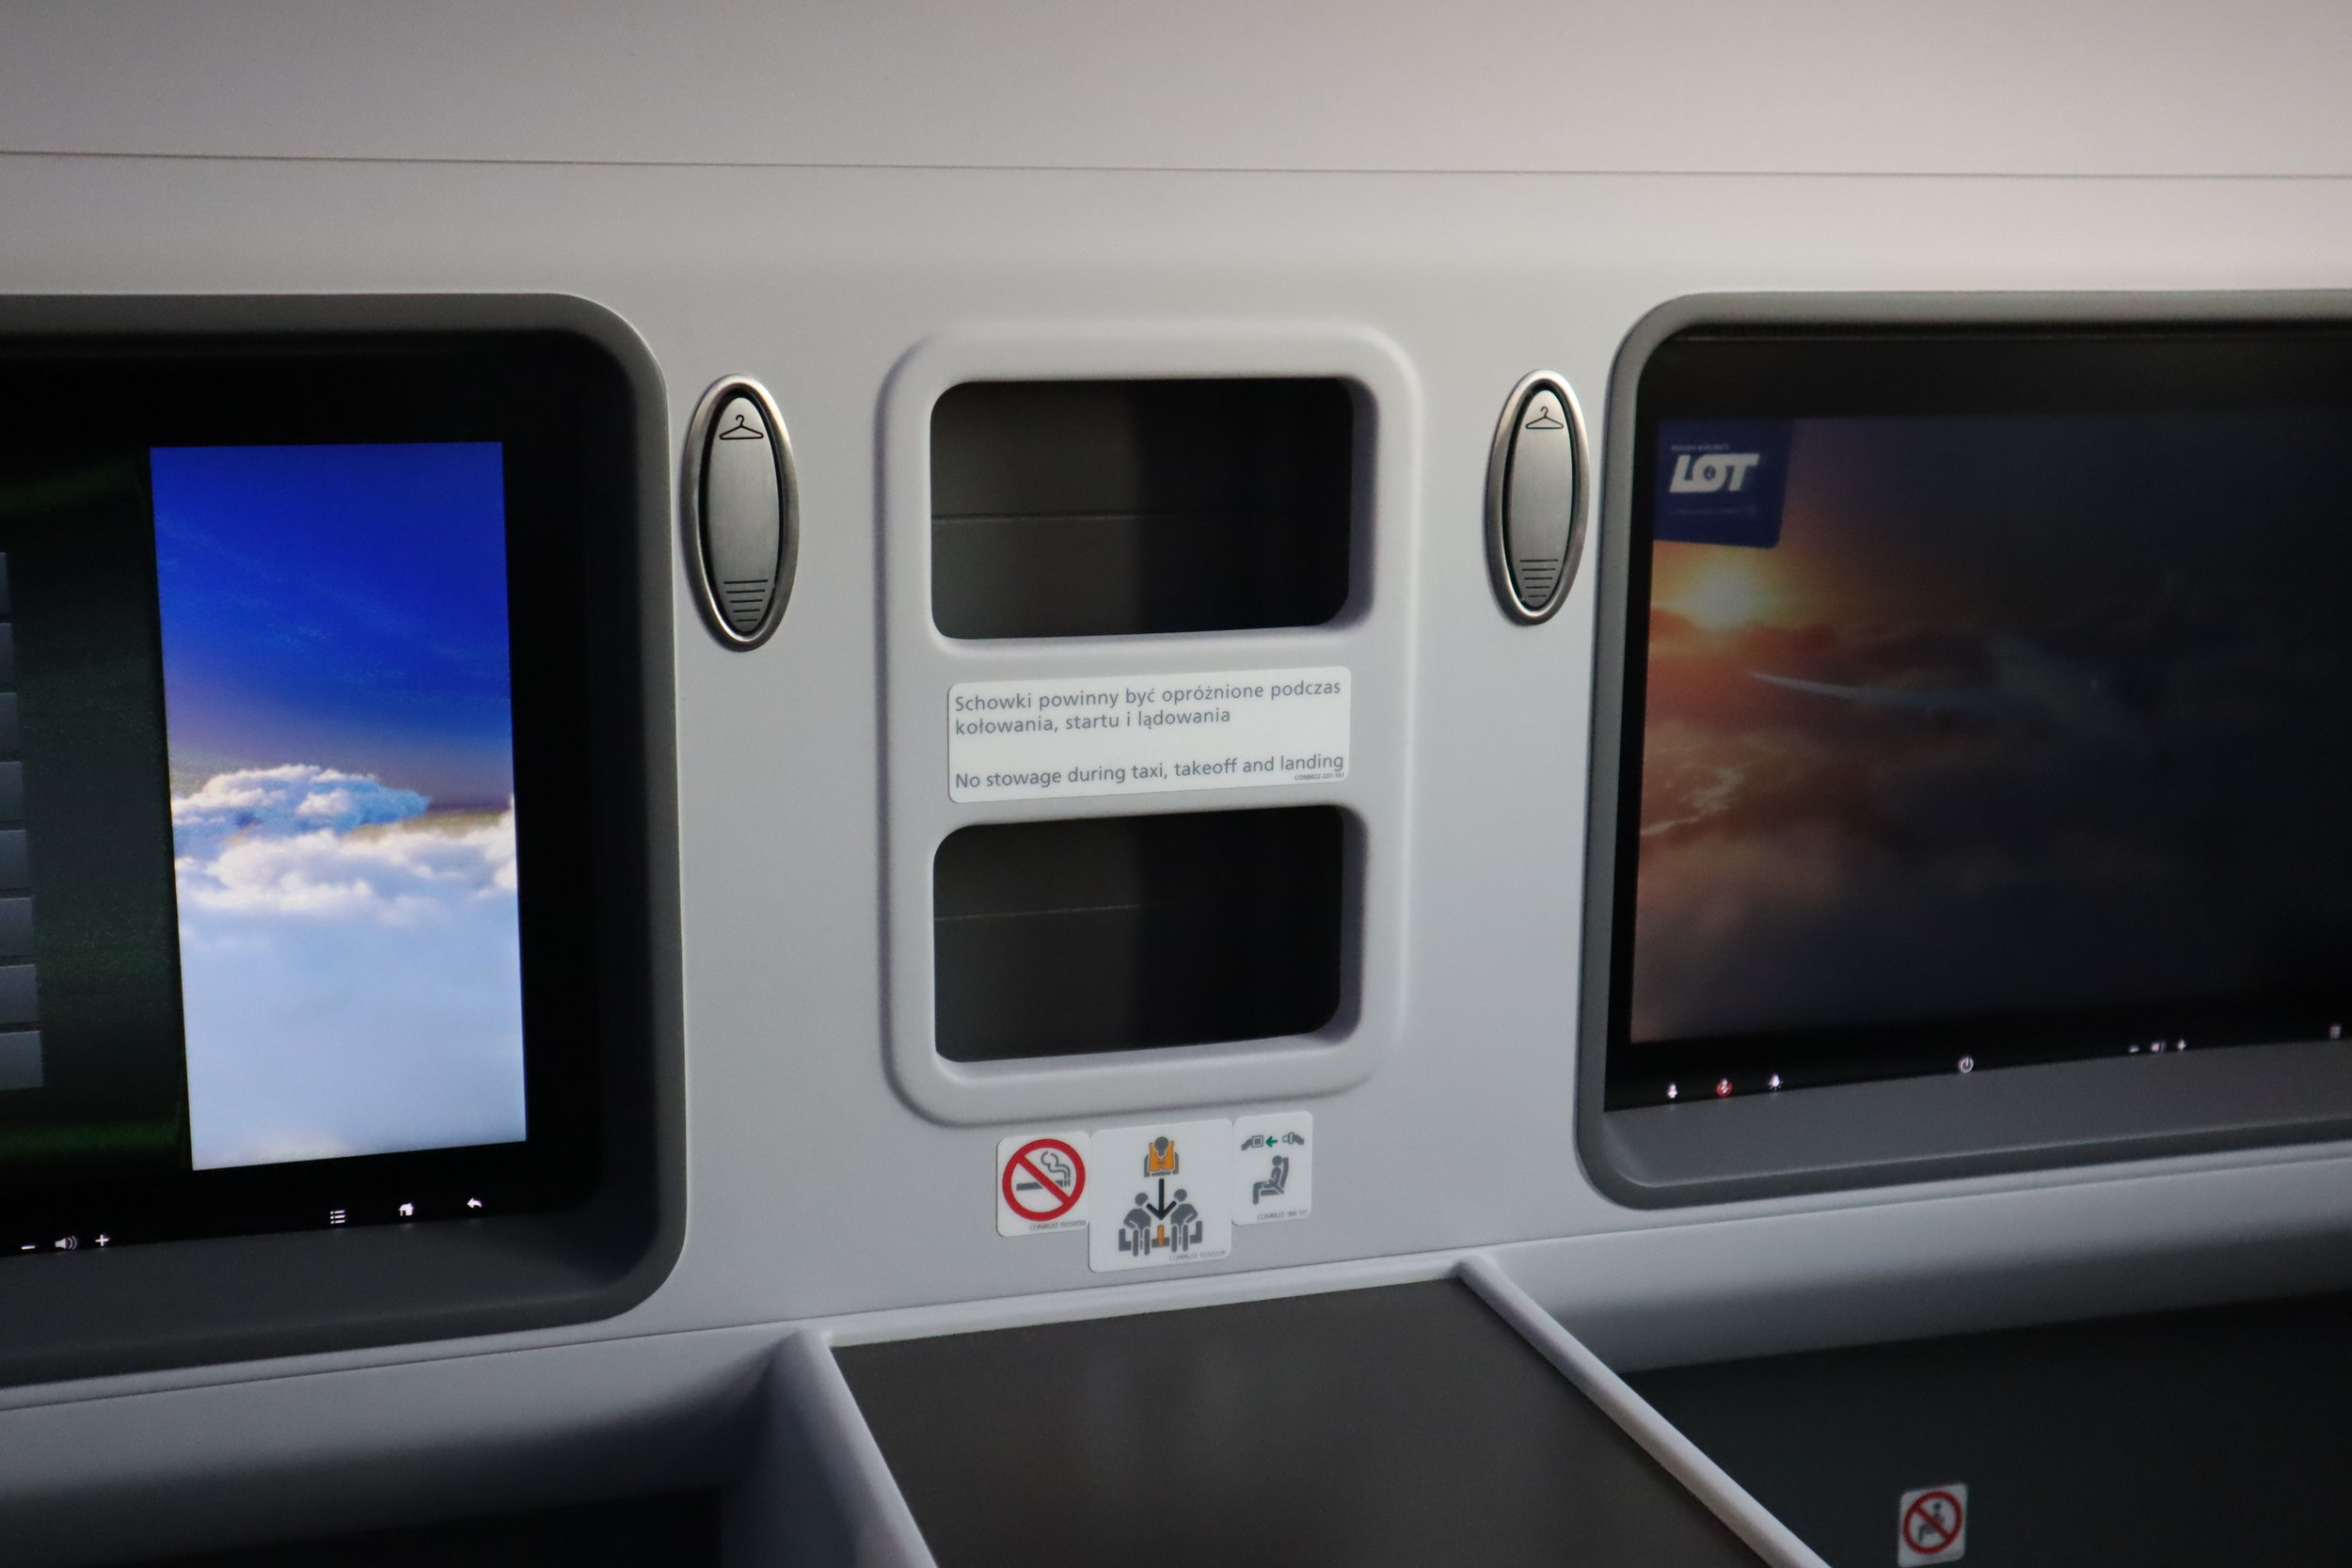 LOT Polish Airlines business class – Storage compartments